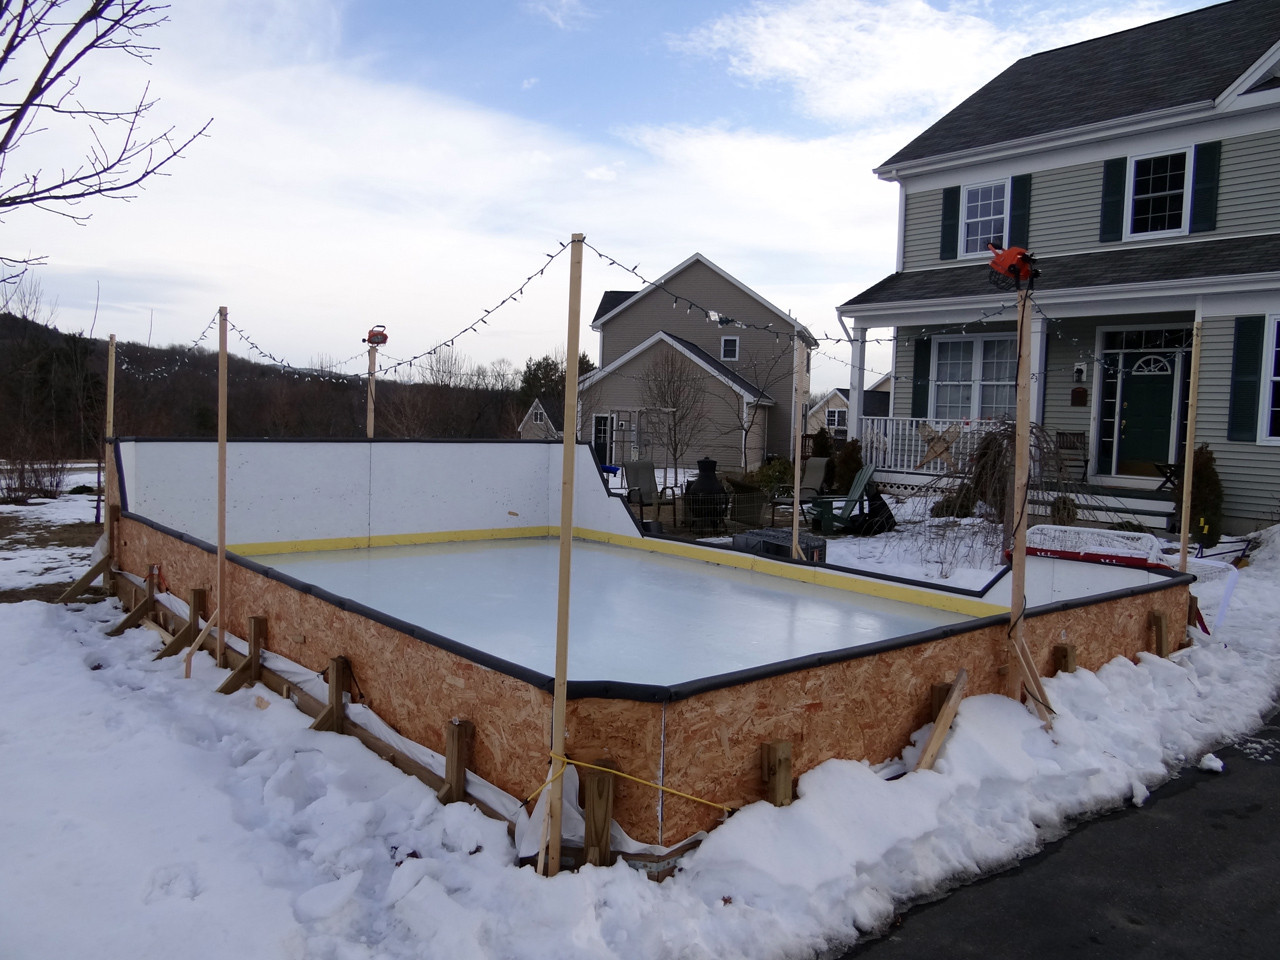 Best ideas about Backyard Ice Rink . Save or Pin Backyard fence ideas cheap Now.